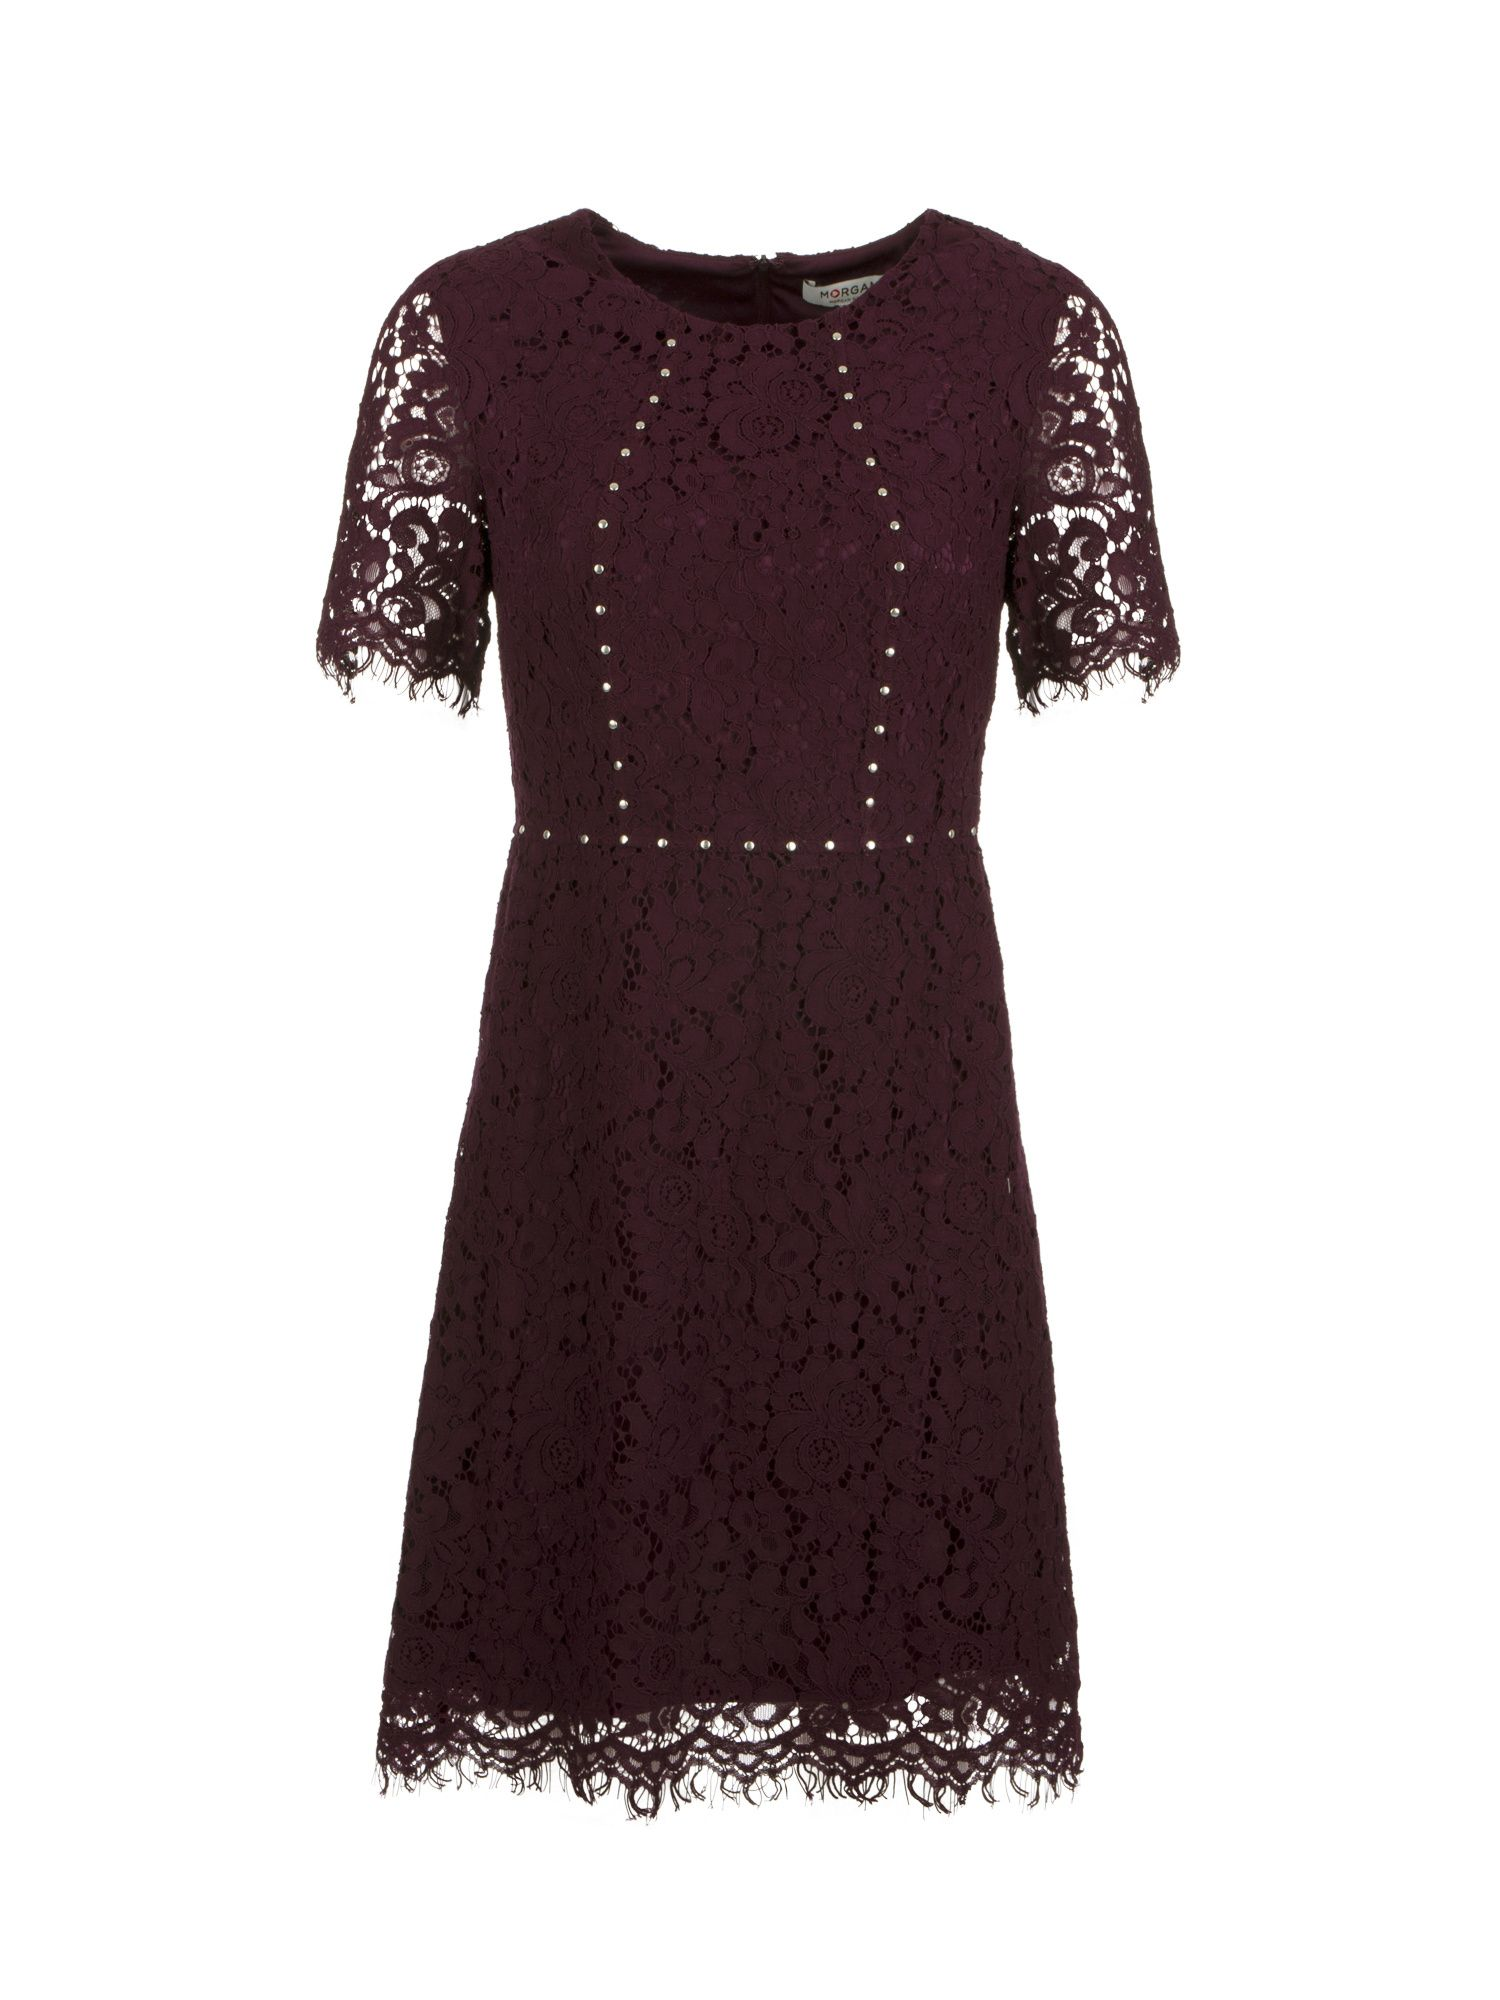 Morgan Lace Dress With Studs, Plum